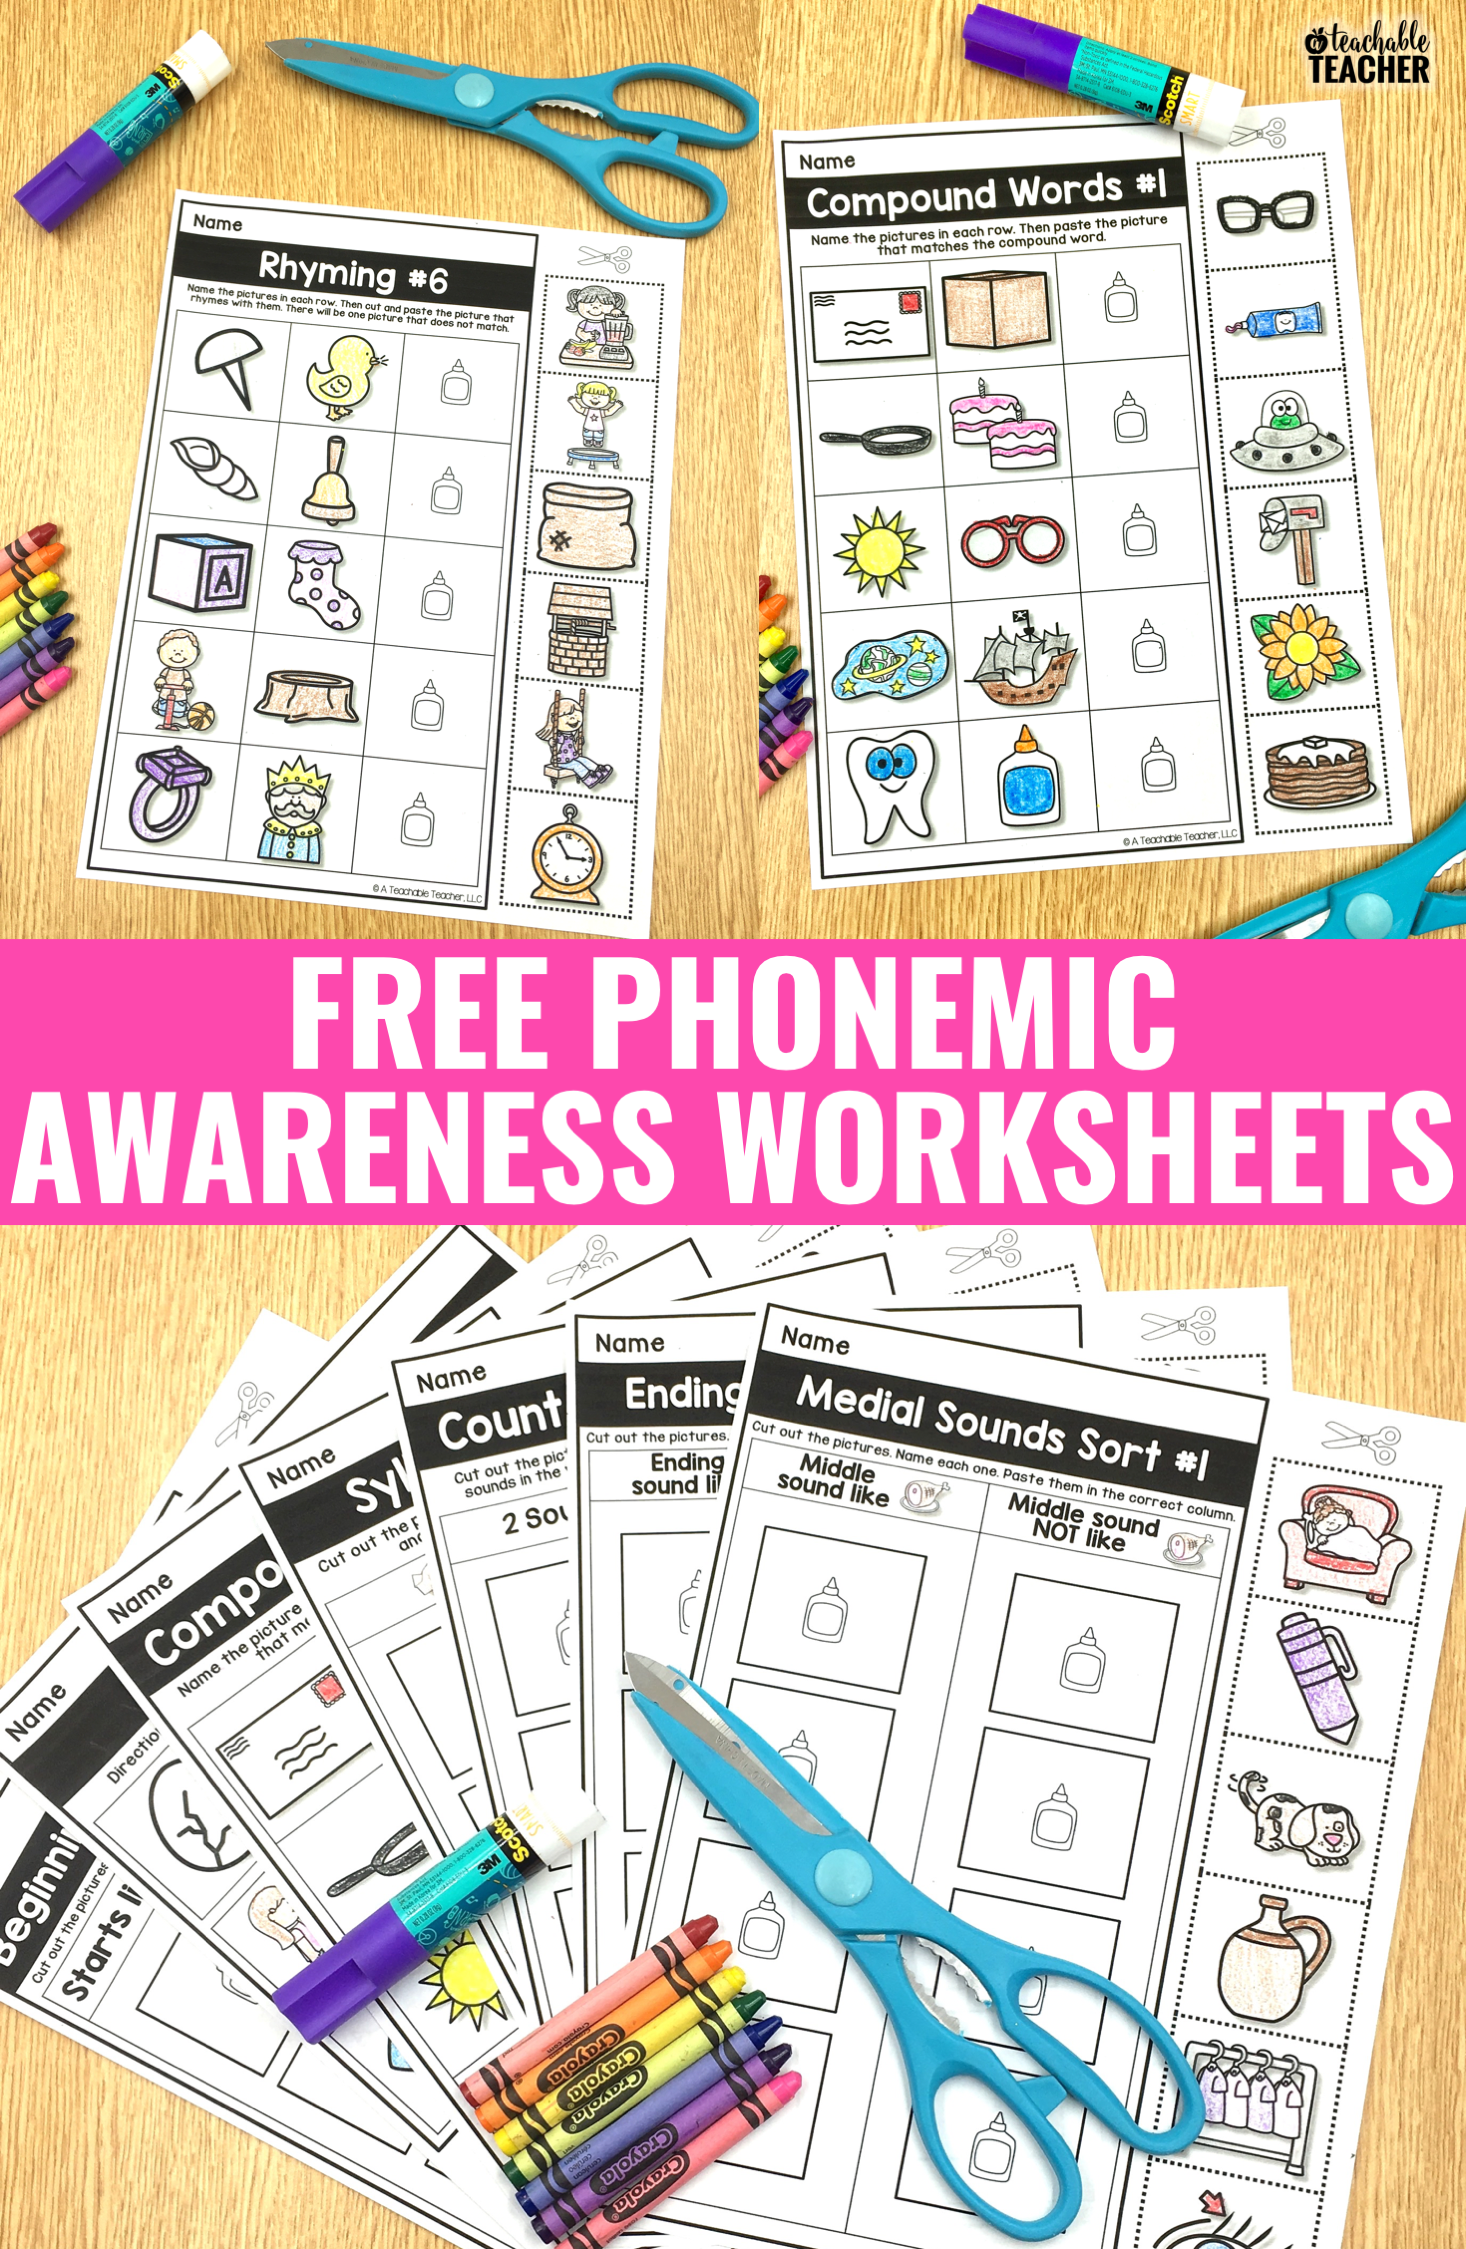 hight resolution of FREE Phonemic Awareness Worksheets - Interactive and Picture-Based   Phonemic  awareness